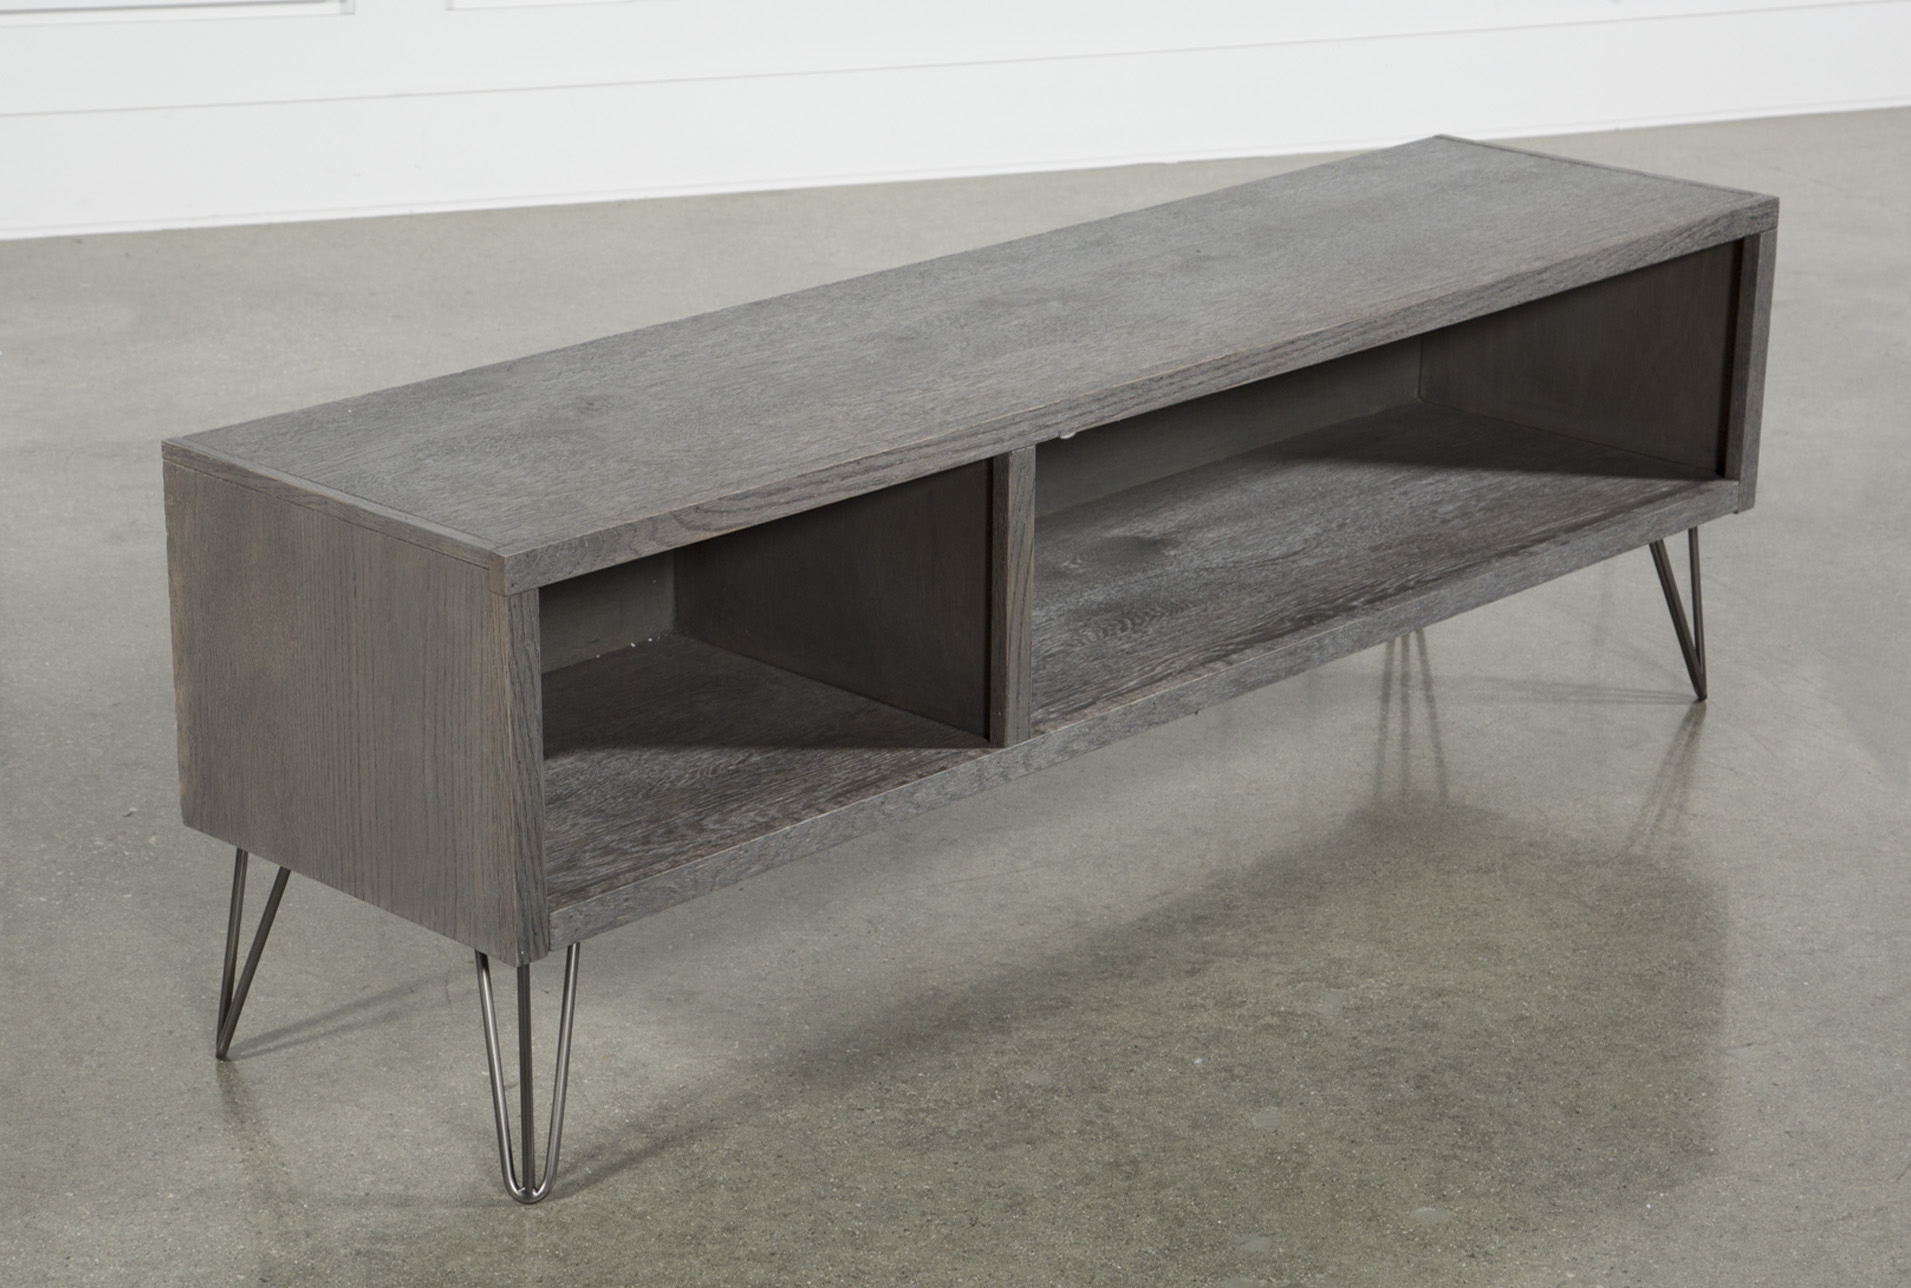 Melrose Titanium 65 Inch Lowboy Tv Stand | Products | Lowboy, Houzz pertaining to Melrose Titanium 65 Inch Lowboy Tv Stands (Image 26 of 30)